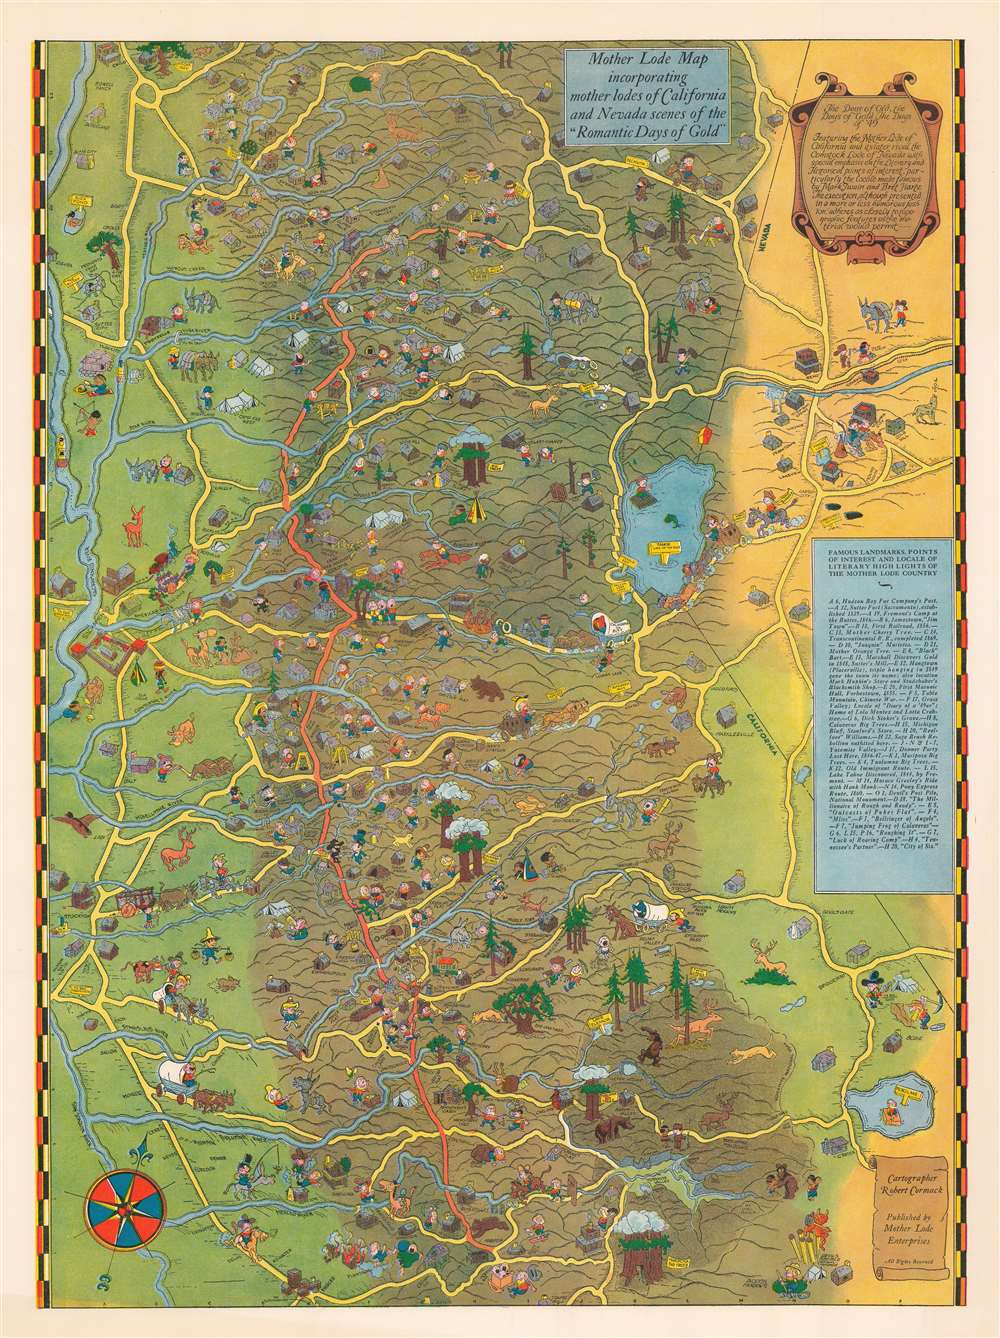 Mother Lode Map incorporating mother lodes of California and Nevada scenes of 'Romantic Days of Gold'. - Main View